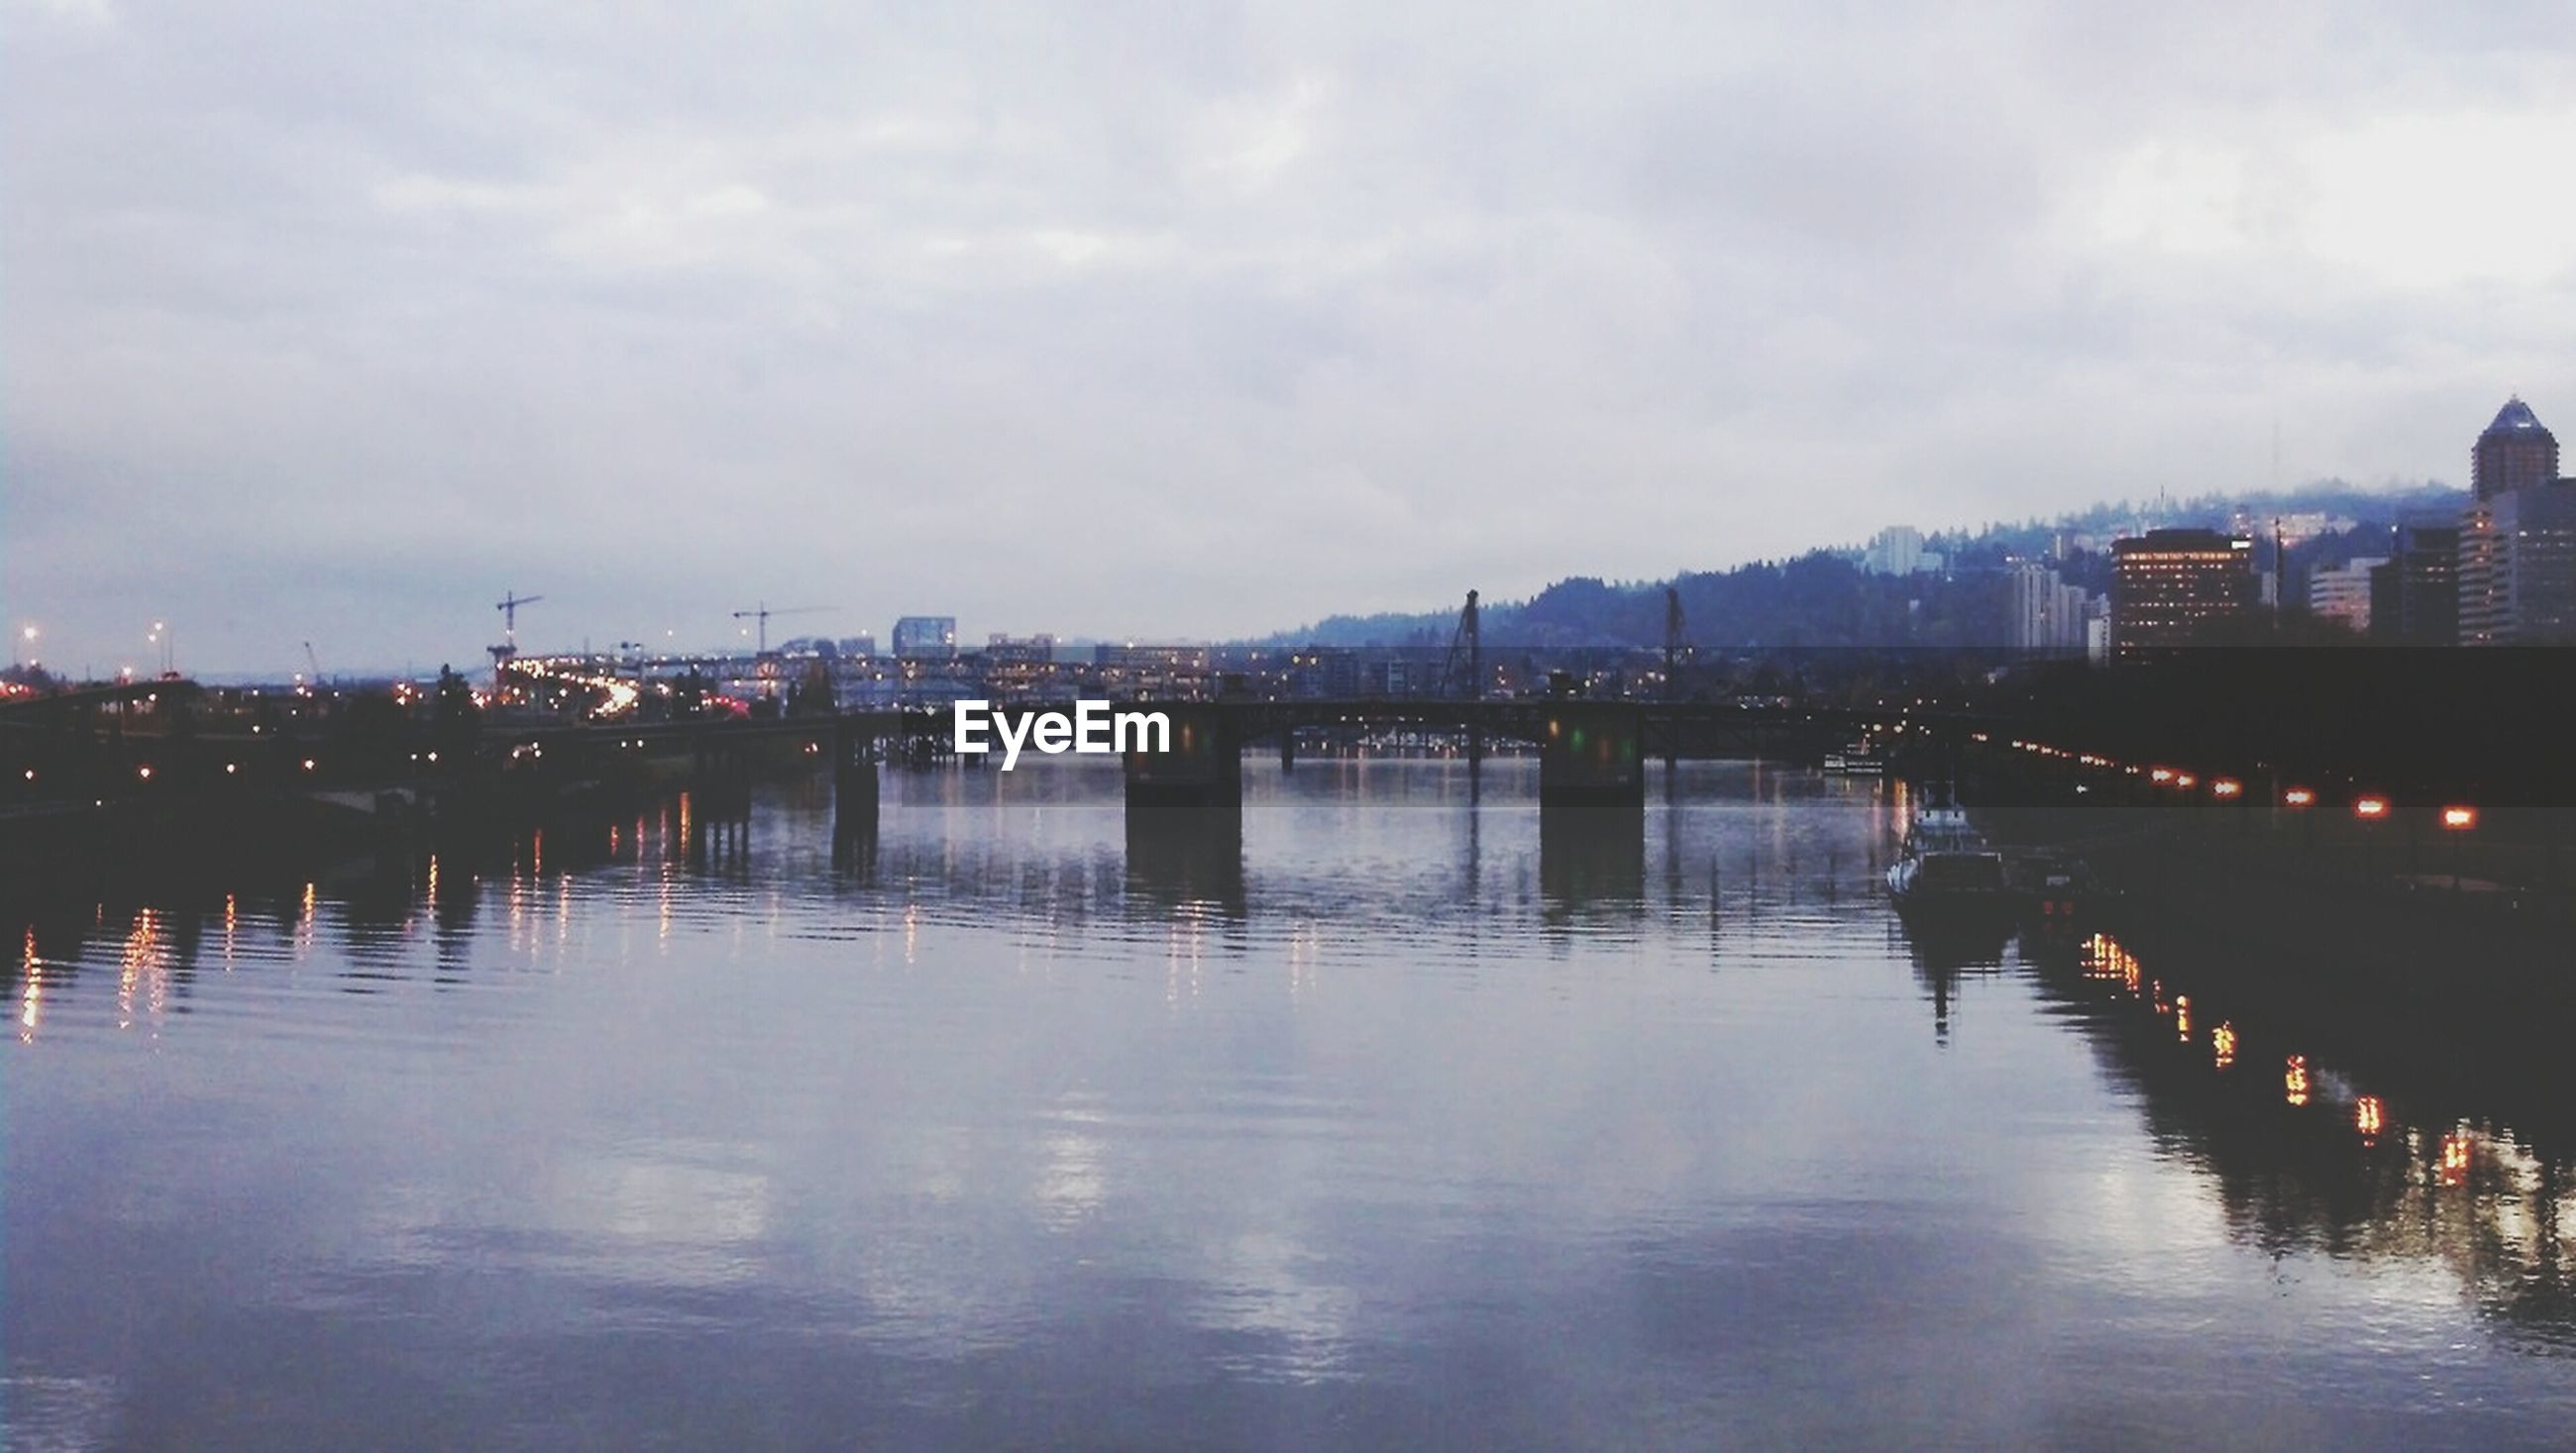 water, architecture, built structure, building exterior, sky, waterfront, reflection, river, cloud - sky, illuminated, city, cloudy, dusk, cloud, outdoors, bridge - man made structure, lake, connection, residential building, transportation